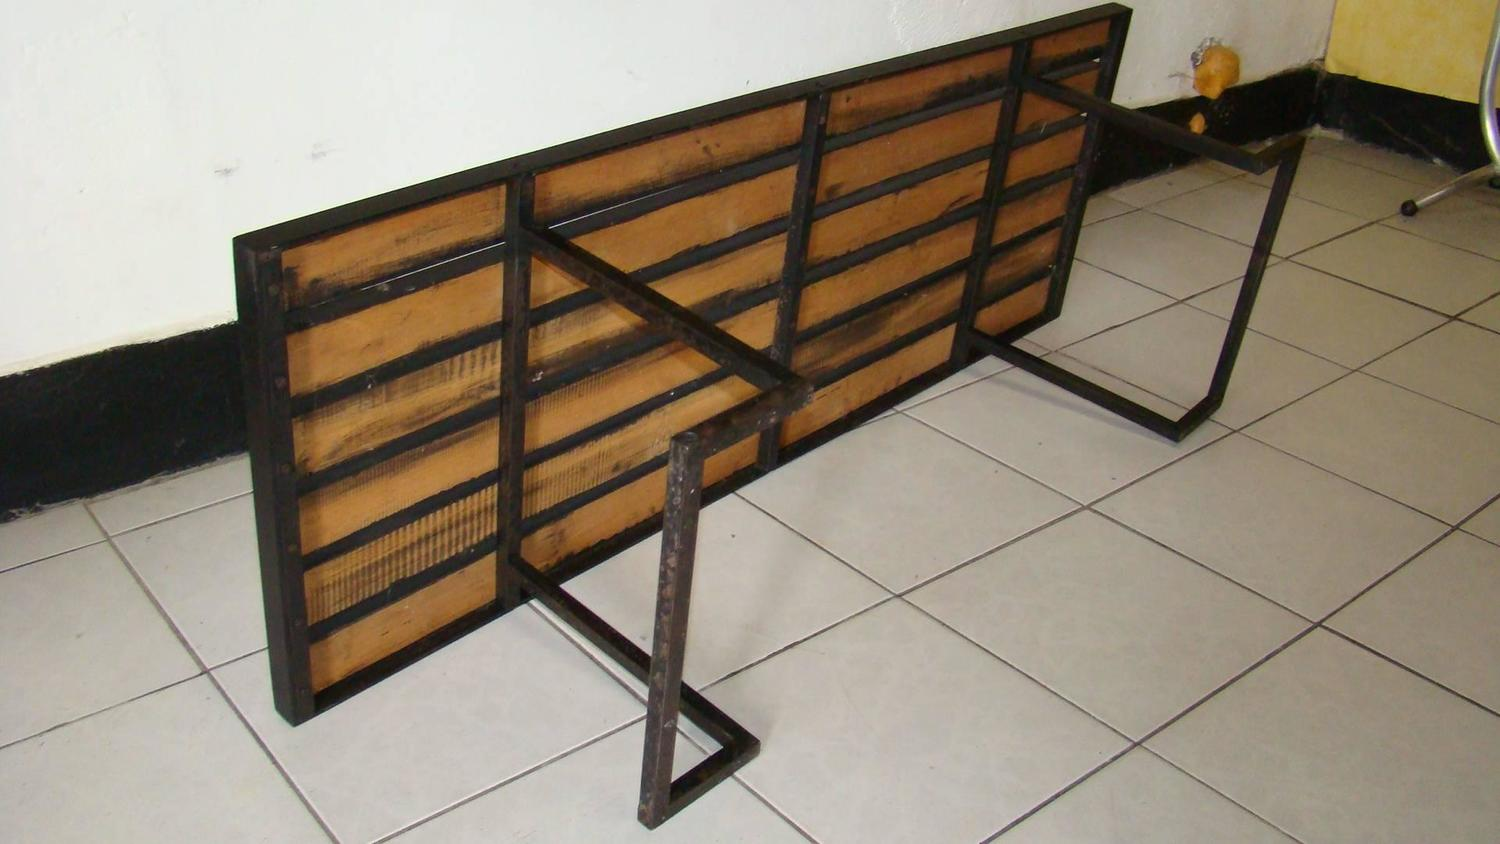 Marvelous photograph of 1950 Metal and Lacquered Wood Coffee Table For Sale at 1stdibs with #6D4725 color and 1500x844 pixels